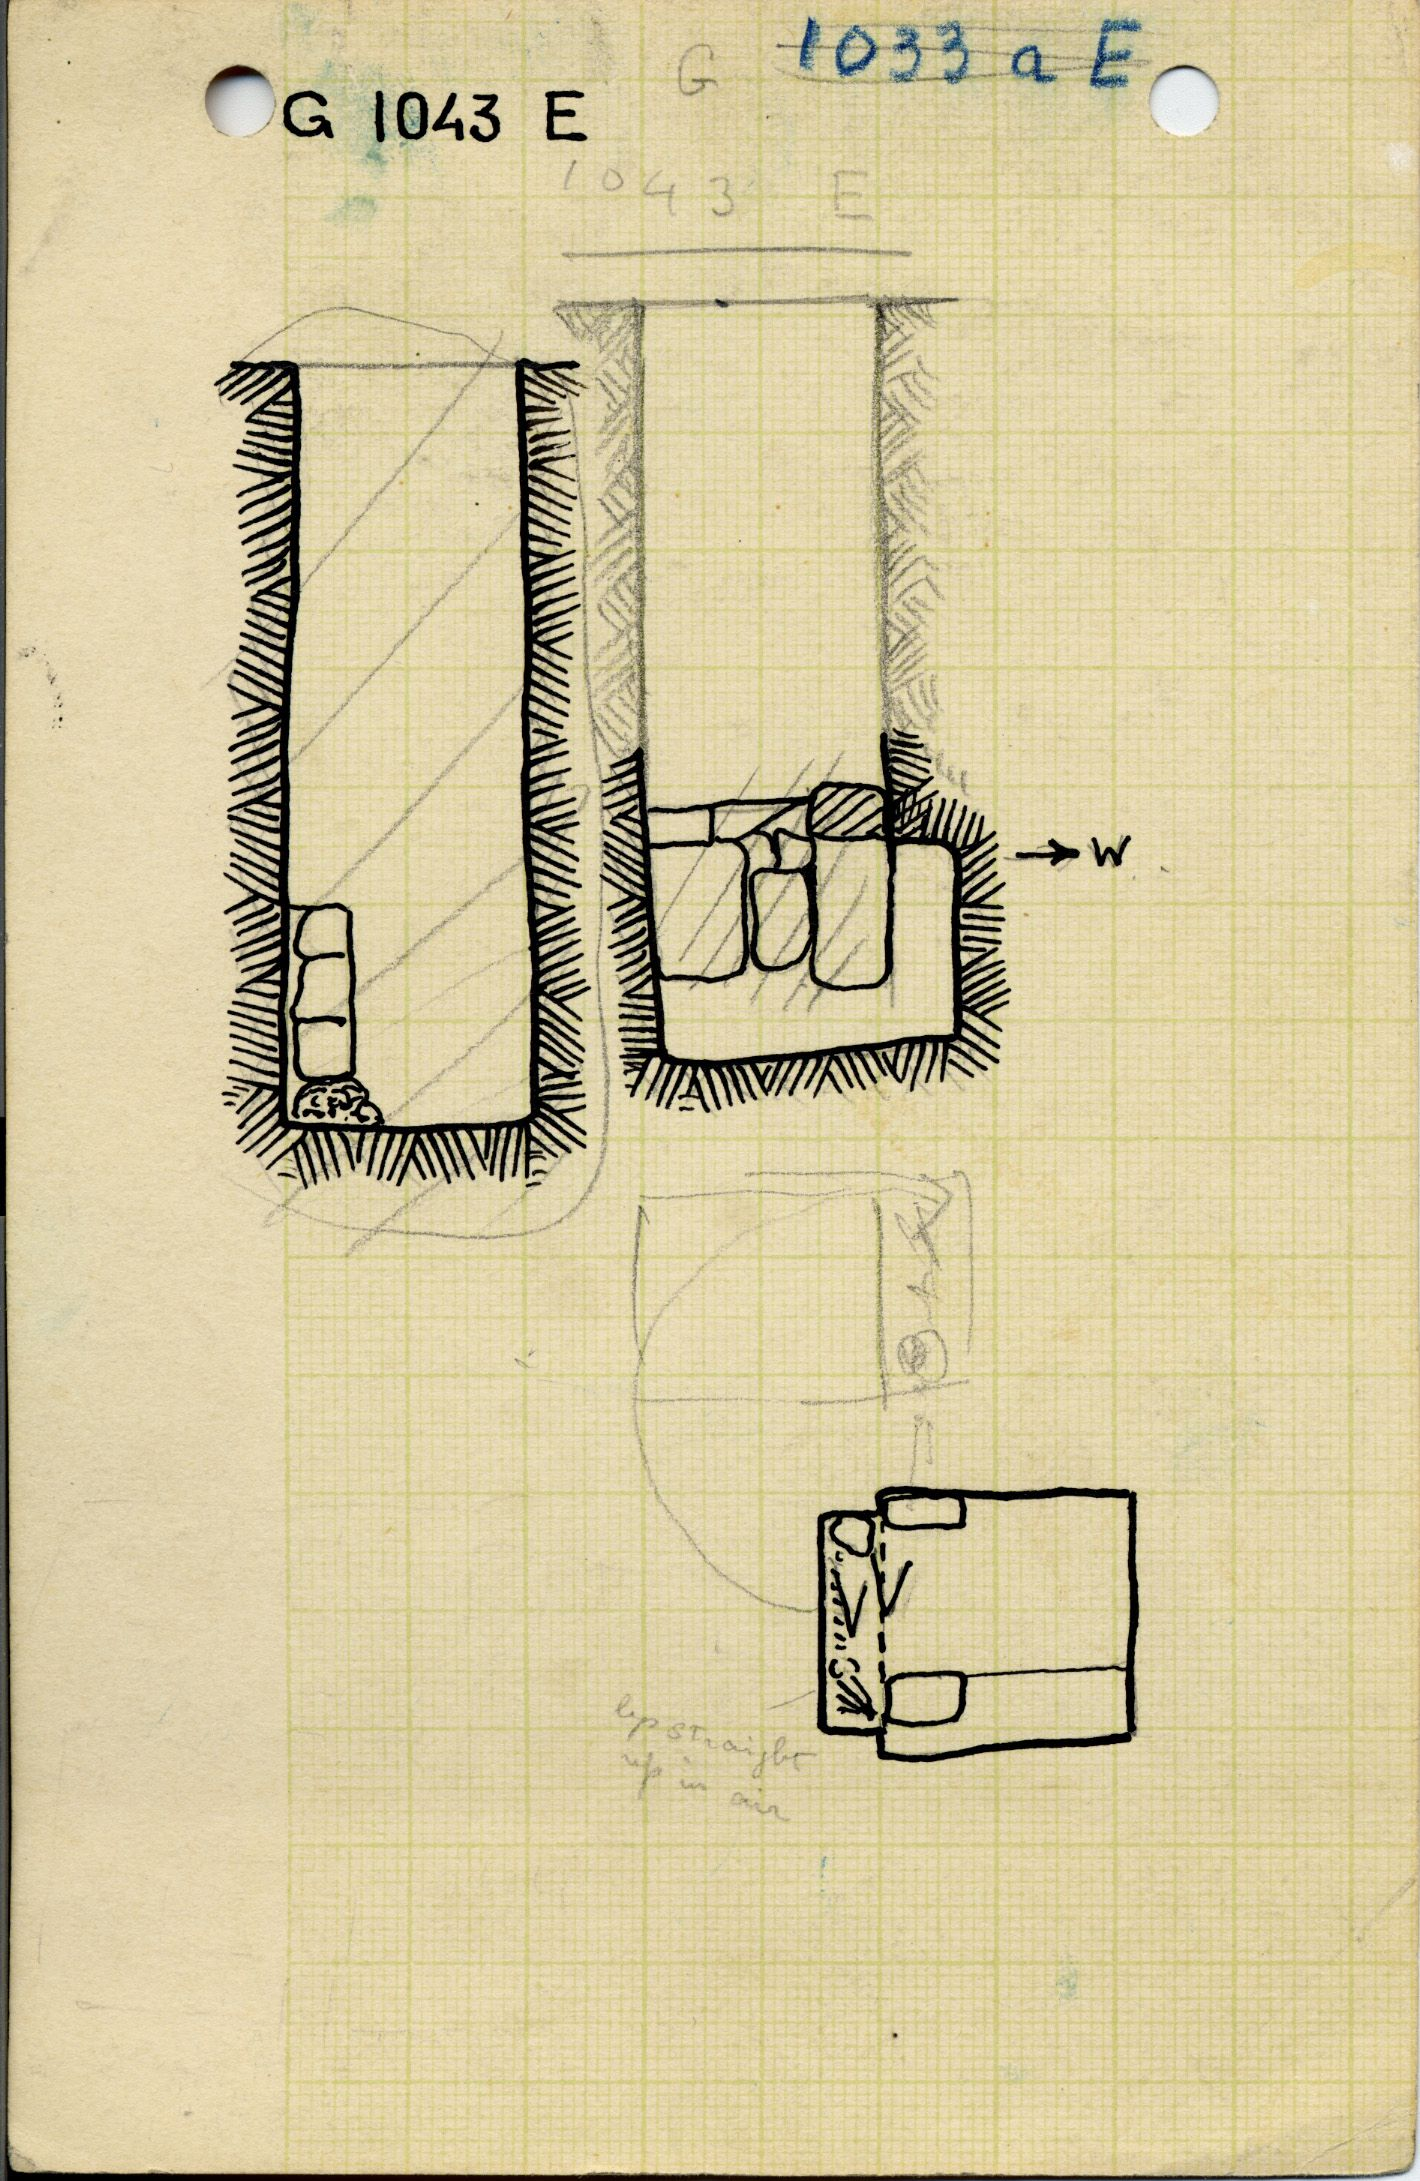 Maps and plans: G 1043, Shaft E